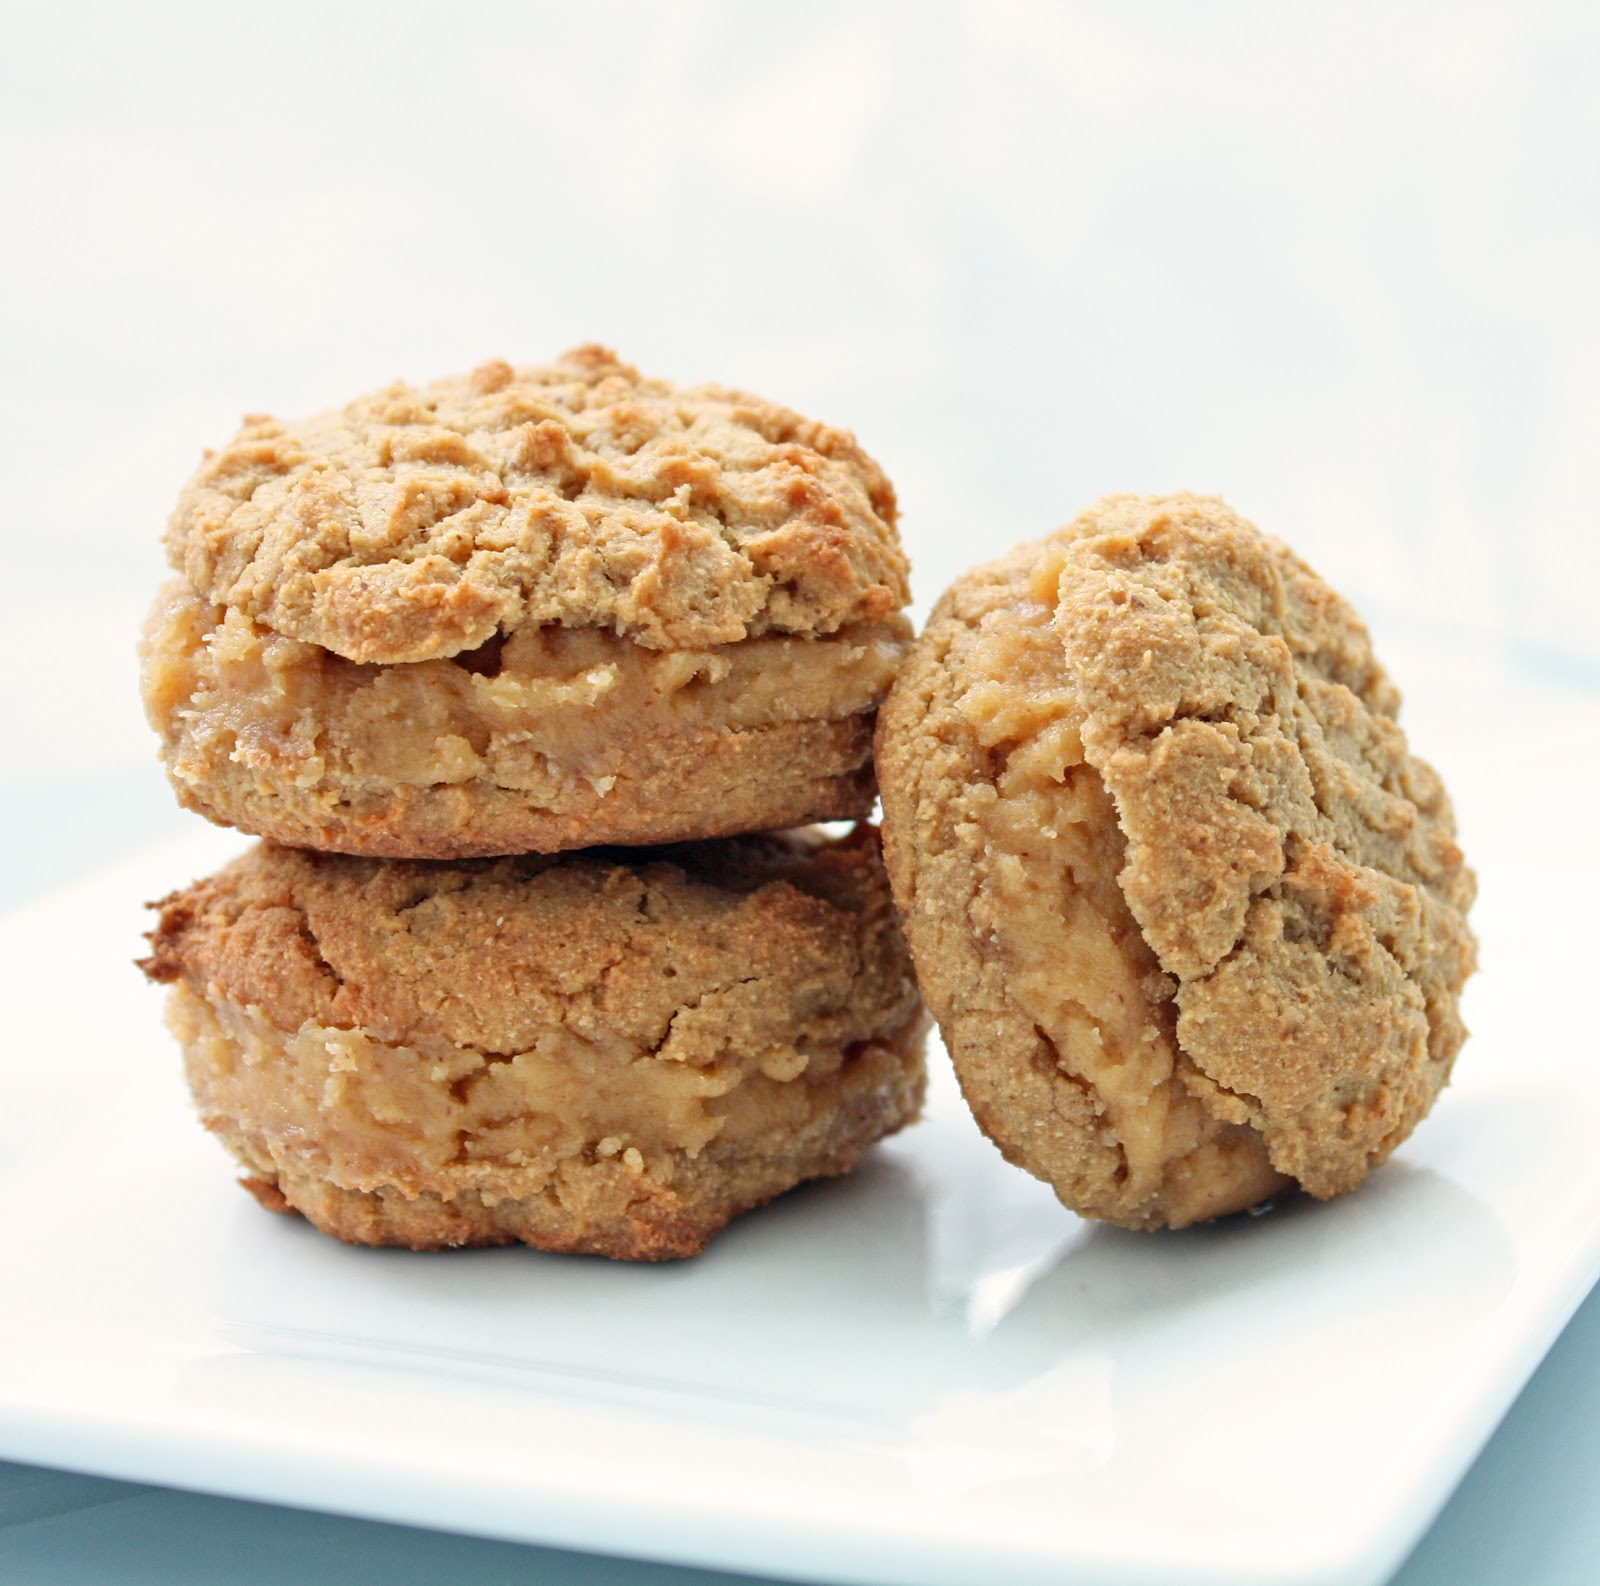 Low Carb Peanut Butter Sandwich Cookies | I Breathe I'm Hungry